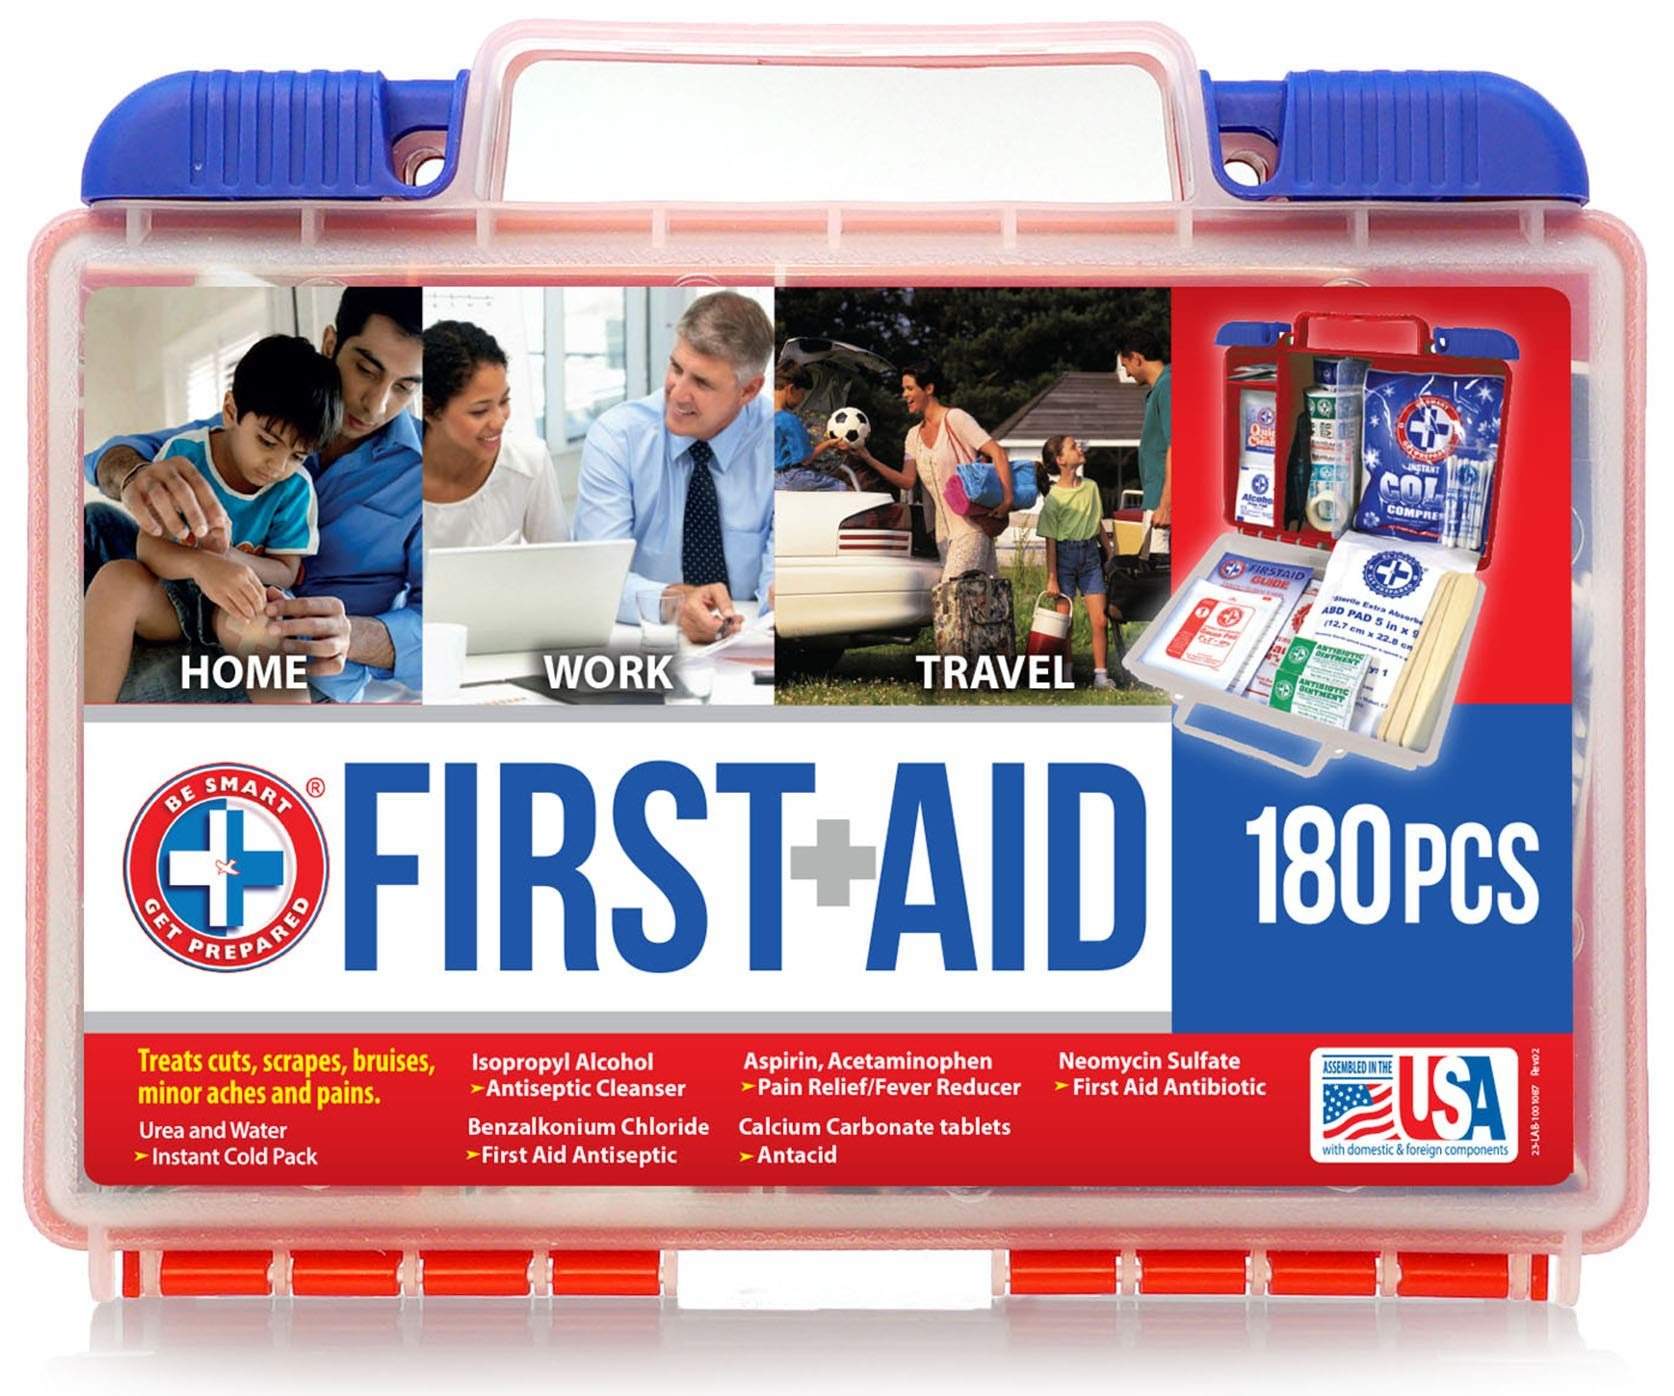 Be Smart Get Prepared First Aid Kit – 180 Piece, (package may vary)